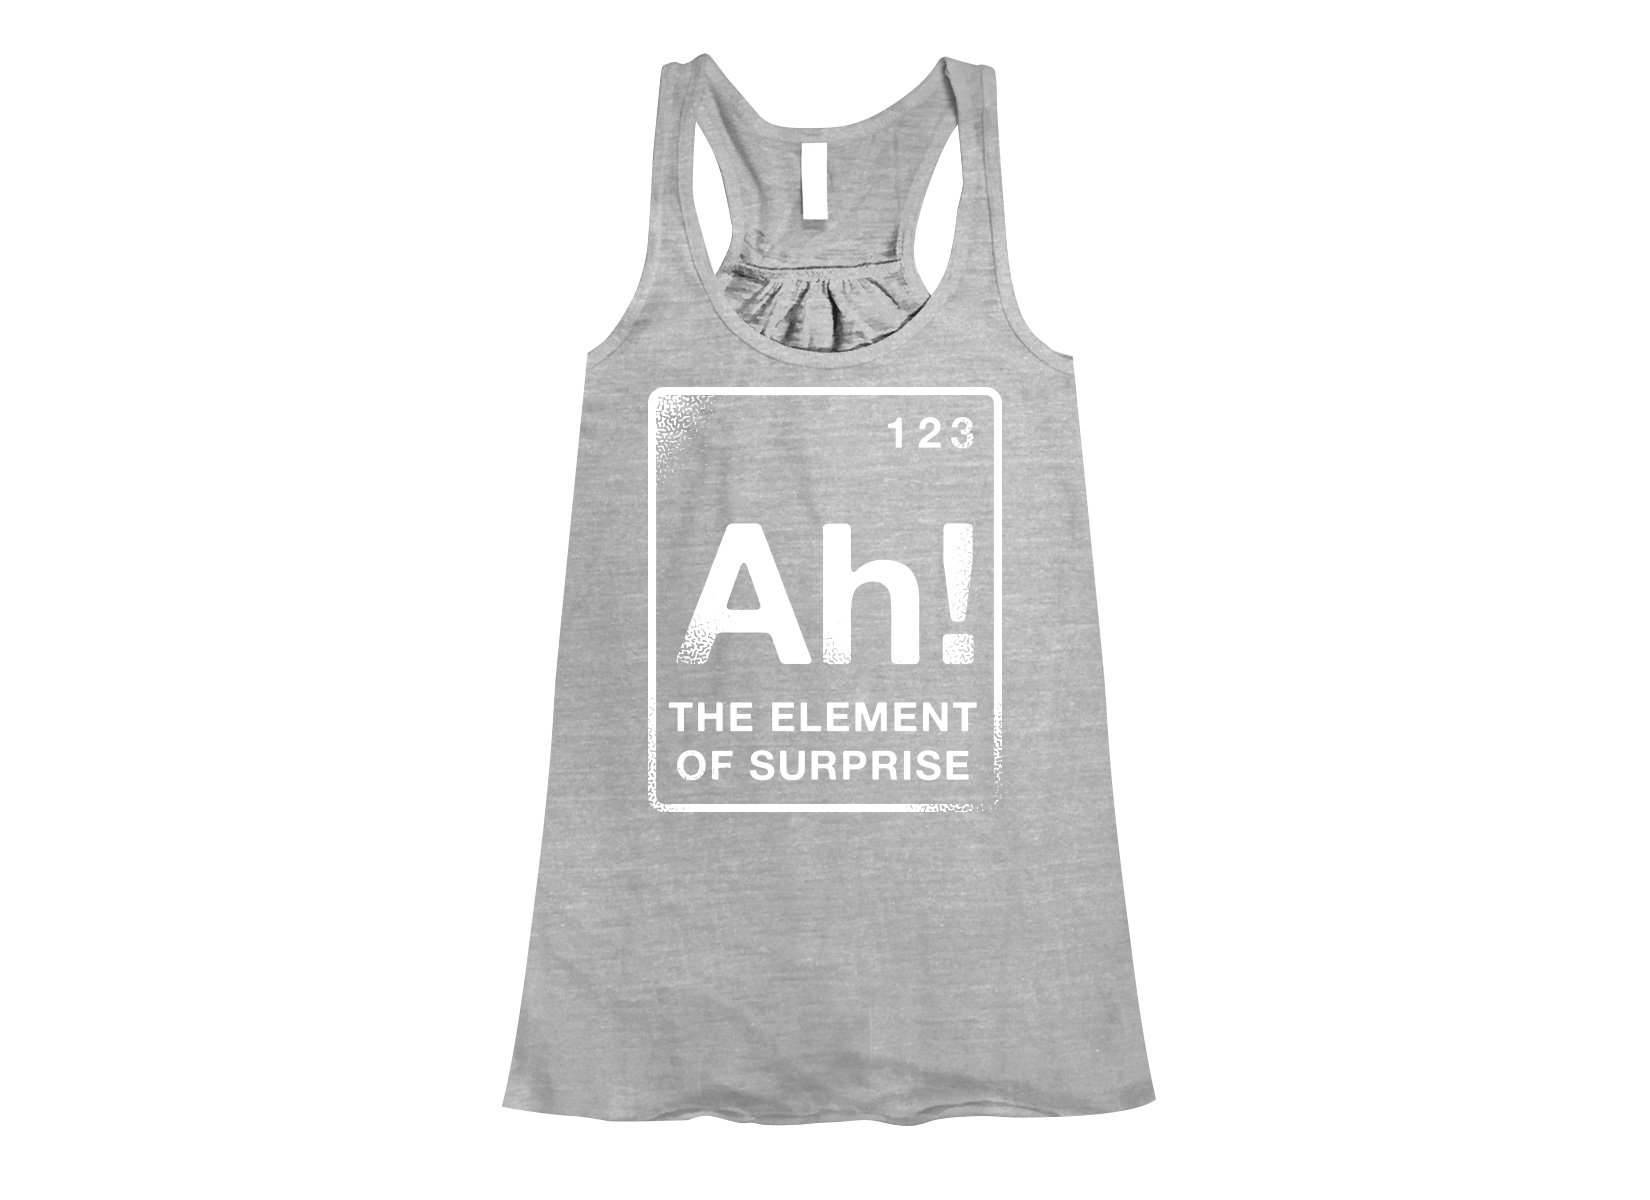 The Element Of Surprise on Womens Tanks T-Shirt